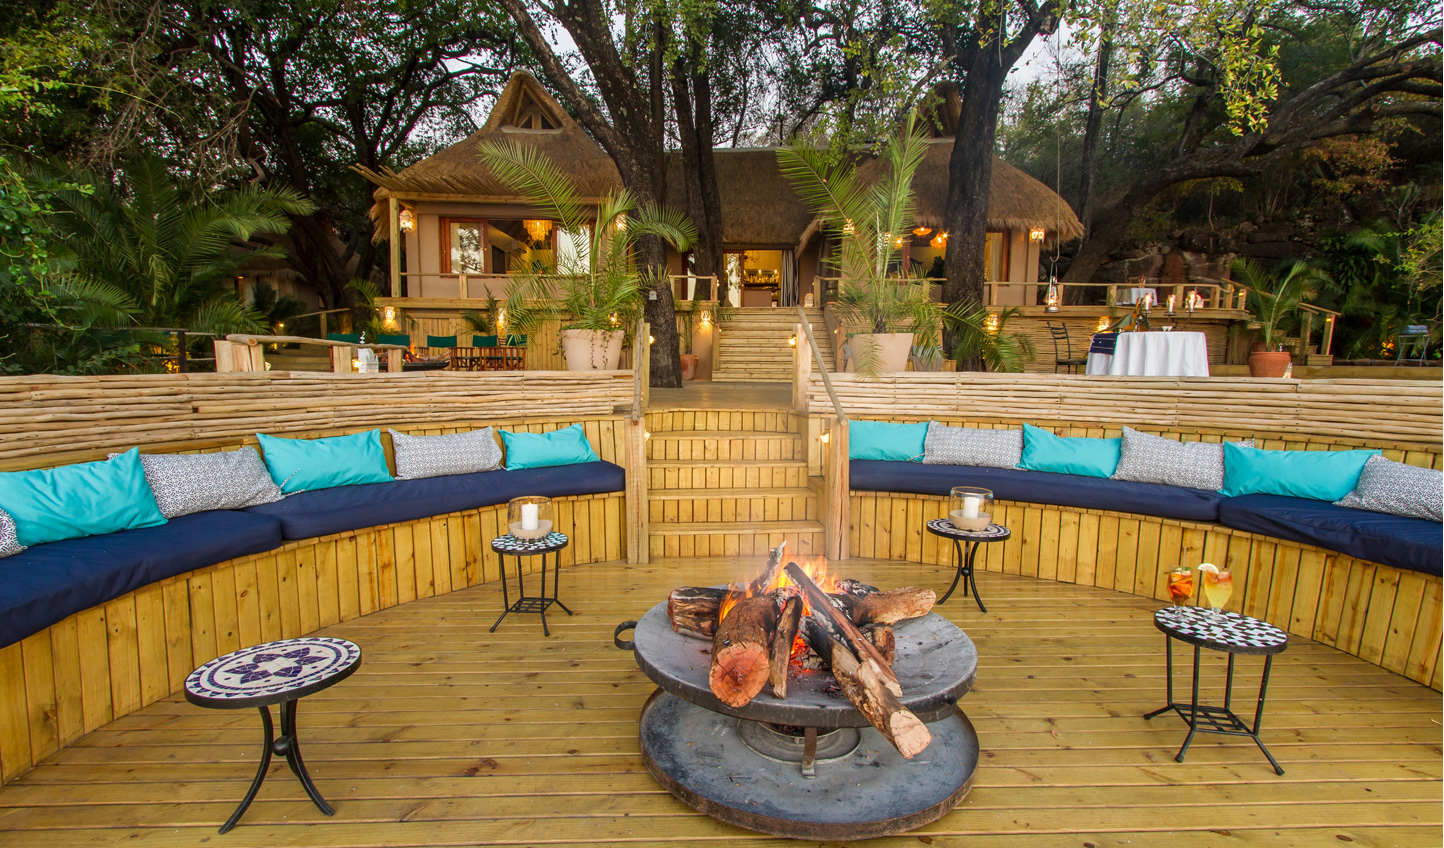 Spend an evening warming yourself up by the firepit